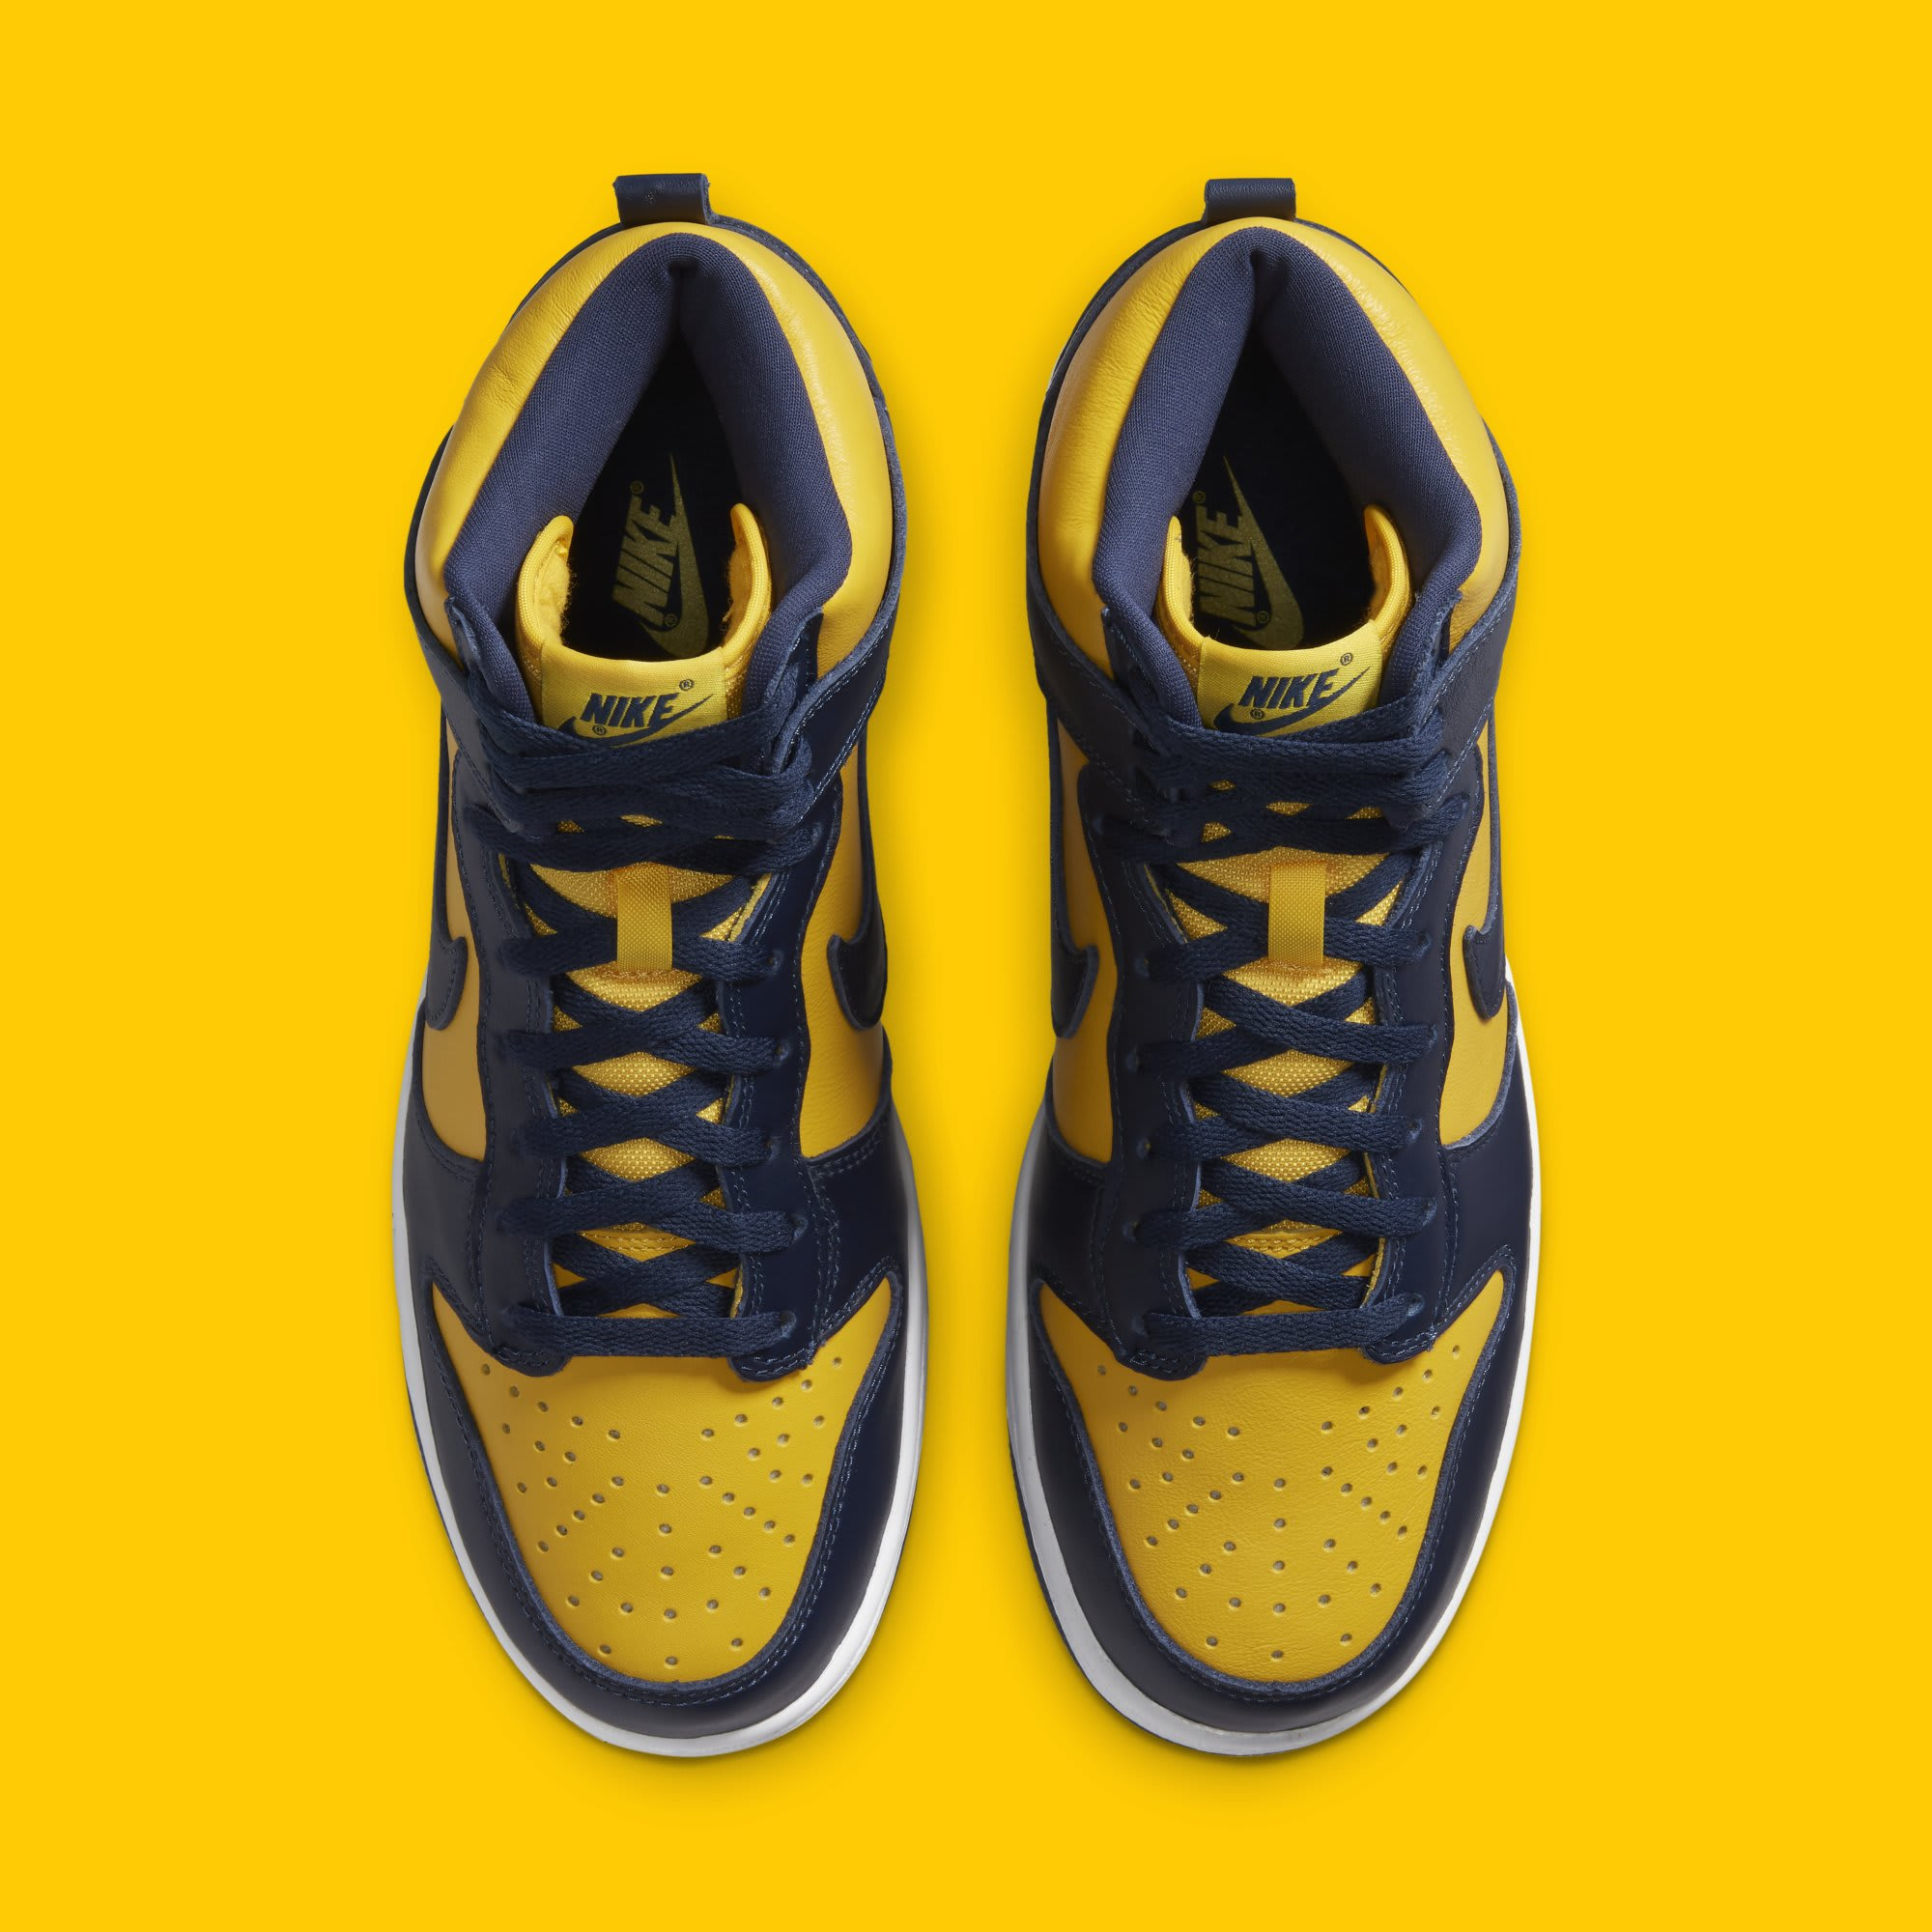 Nike Dunk High SP 'Michigan' CZ8149-700 Top